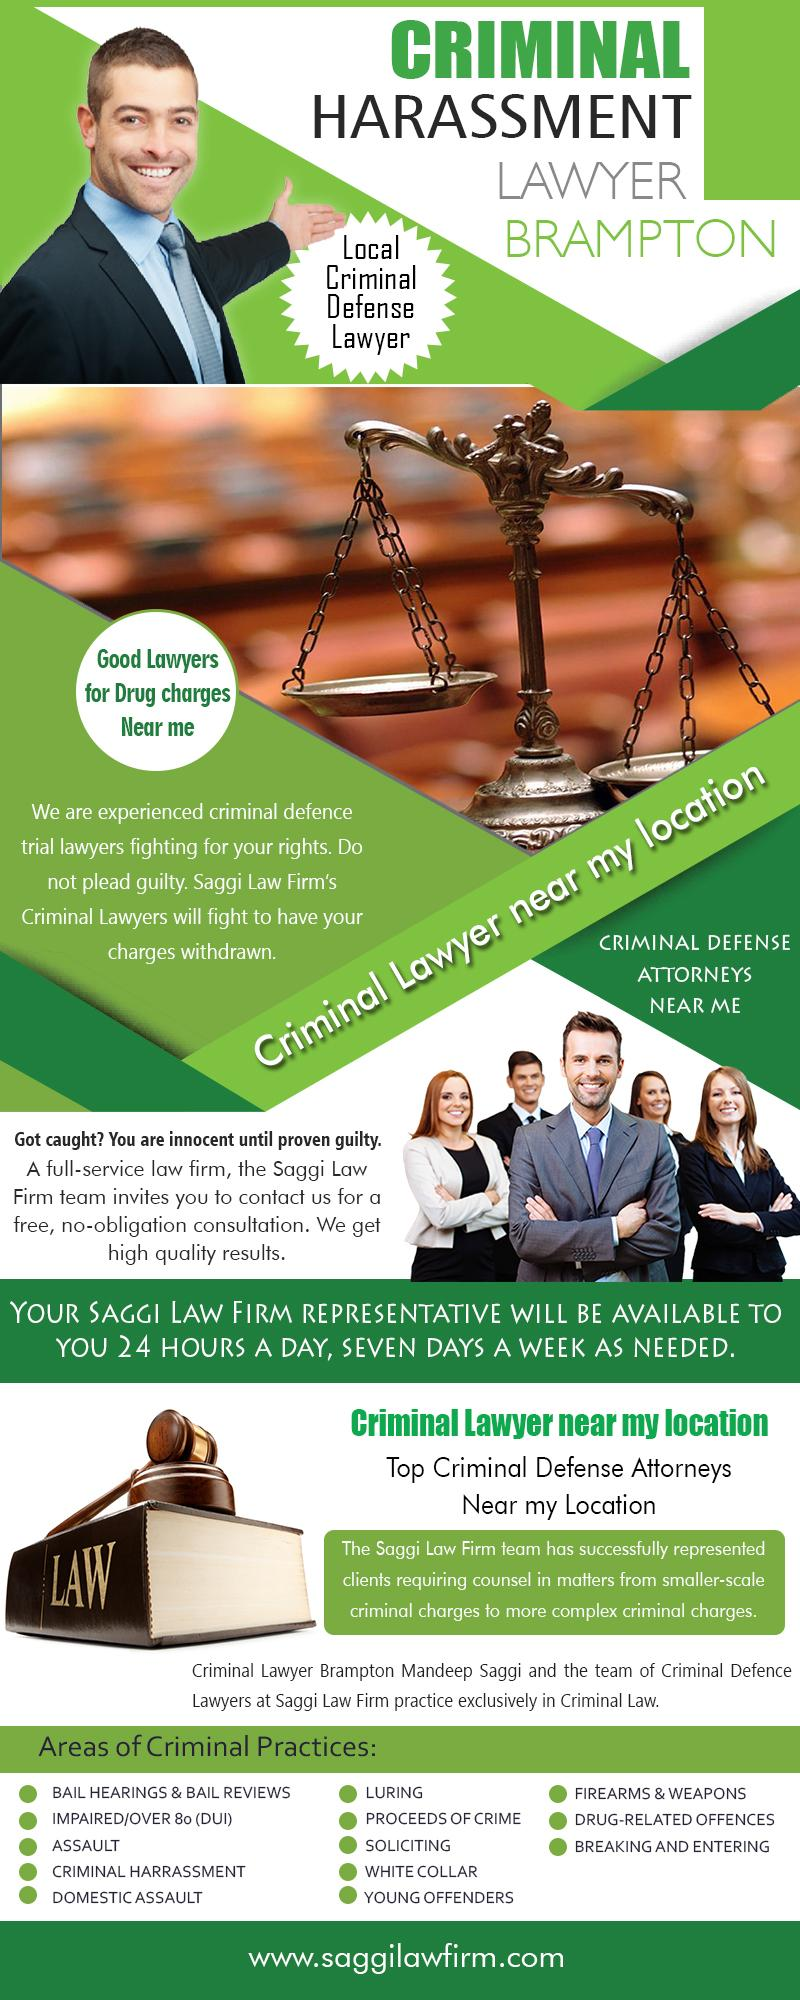 Criminal Defense Attorneys Near Me